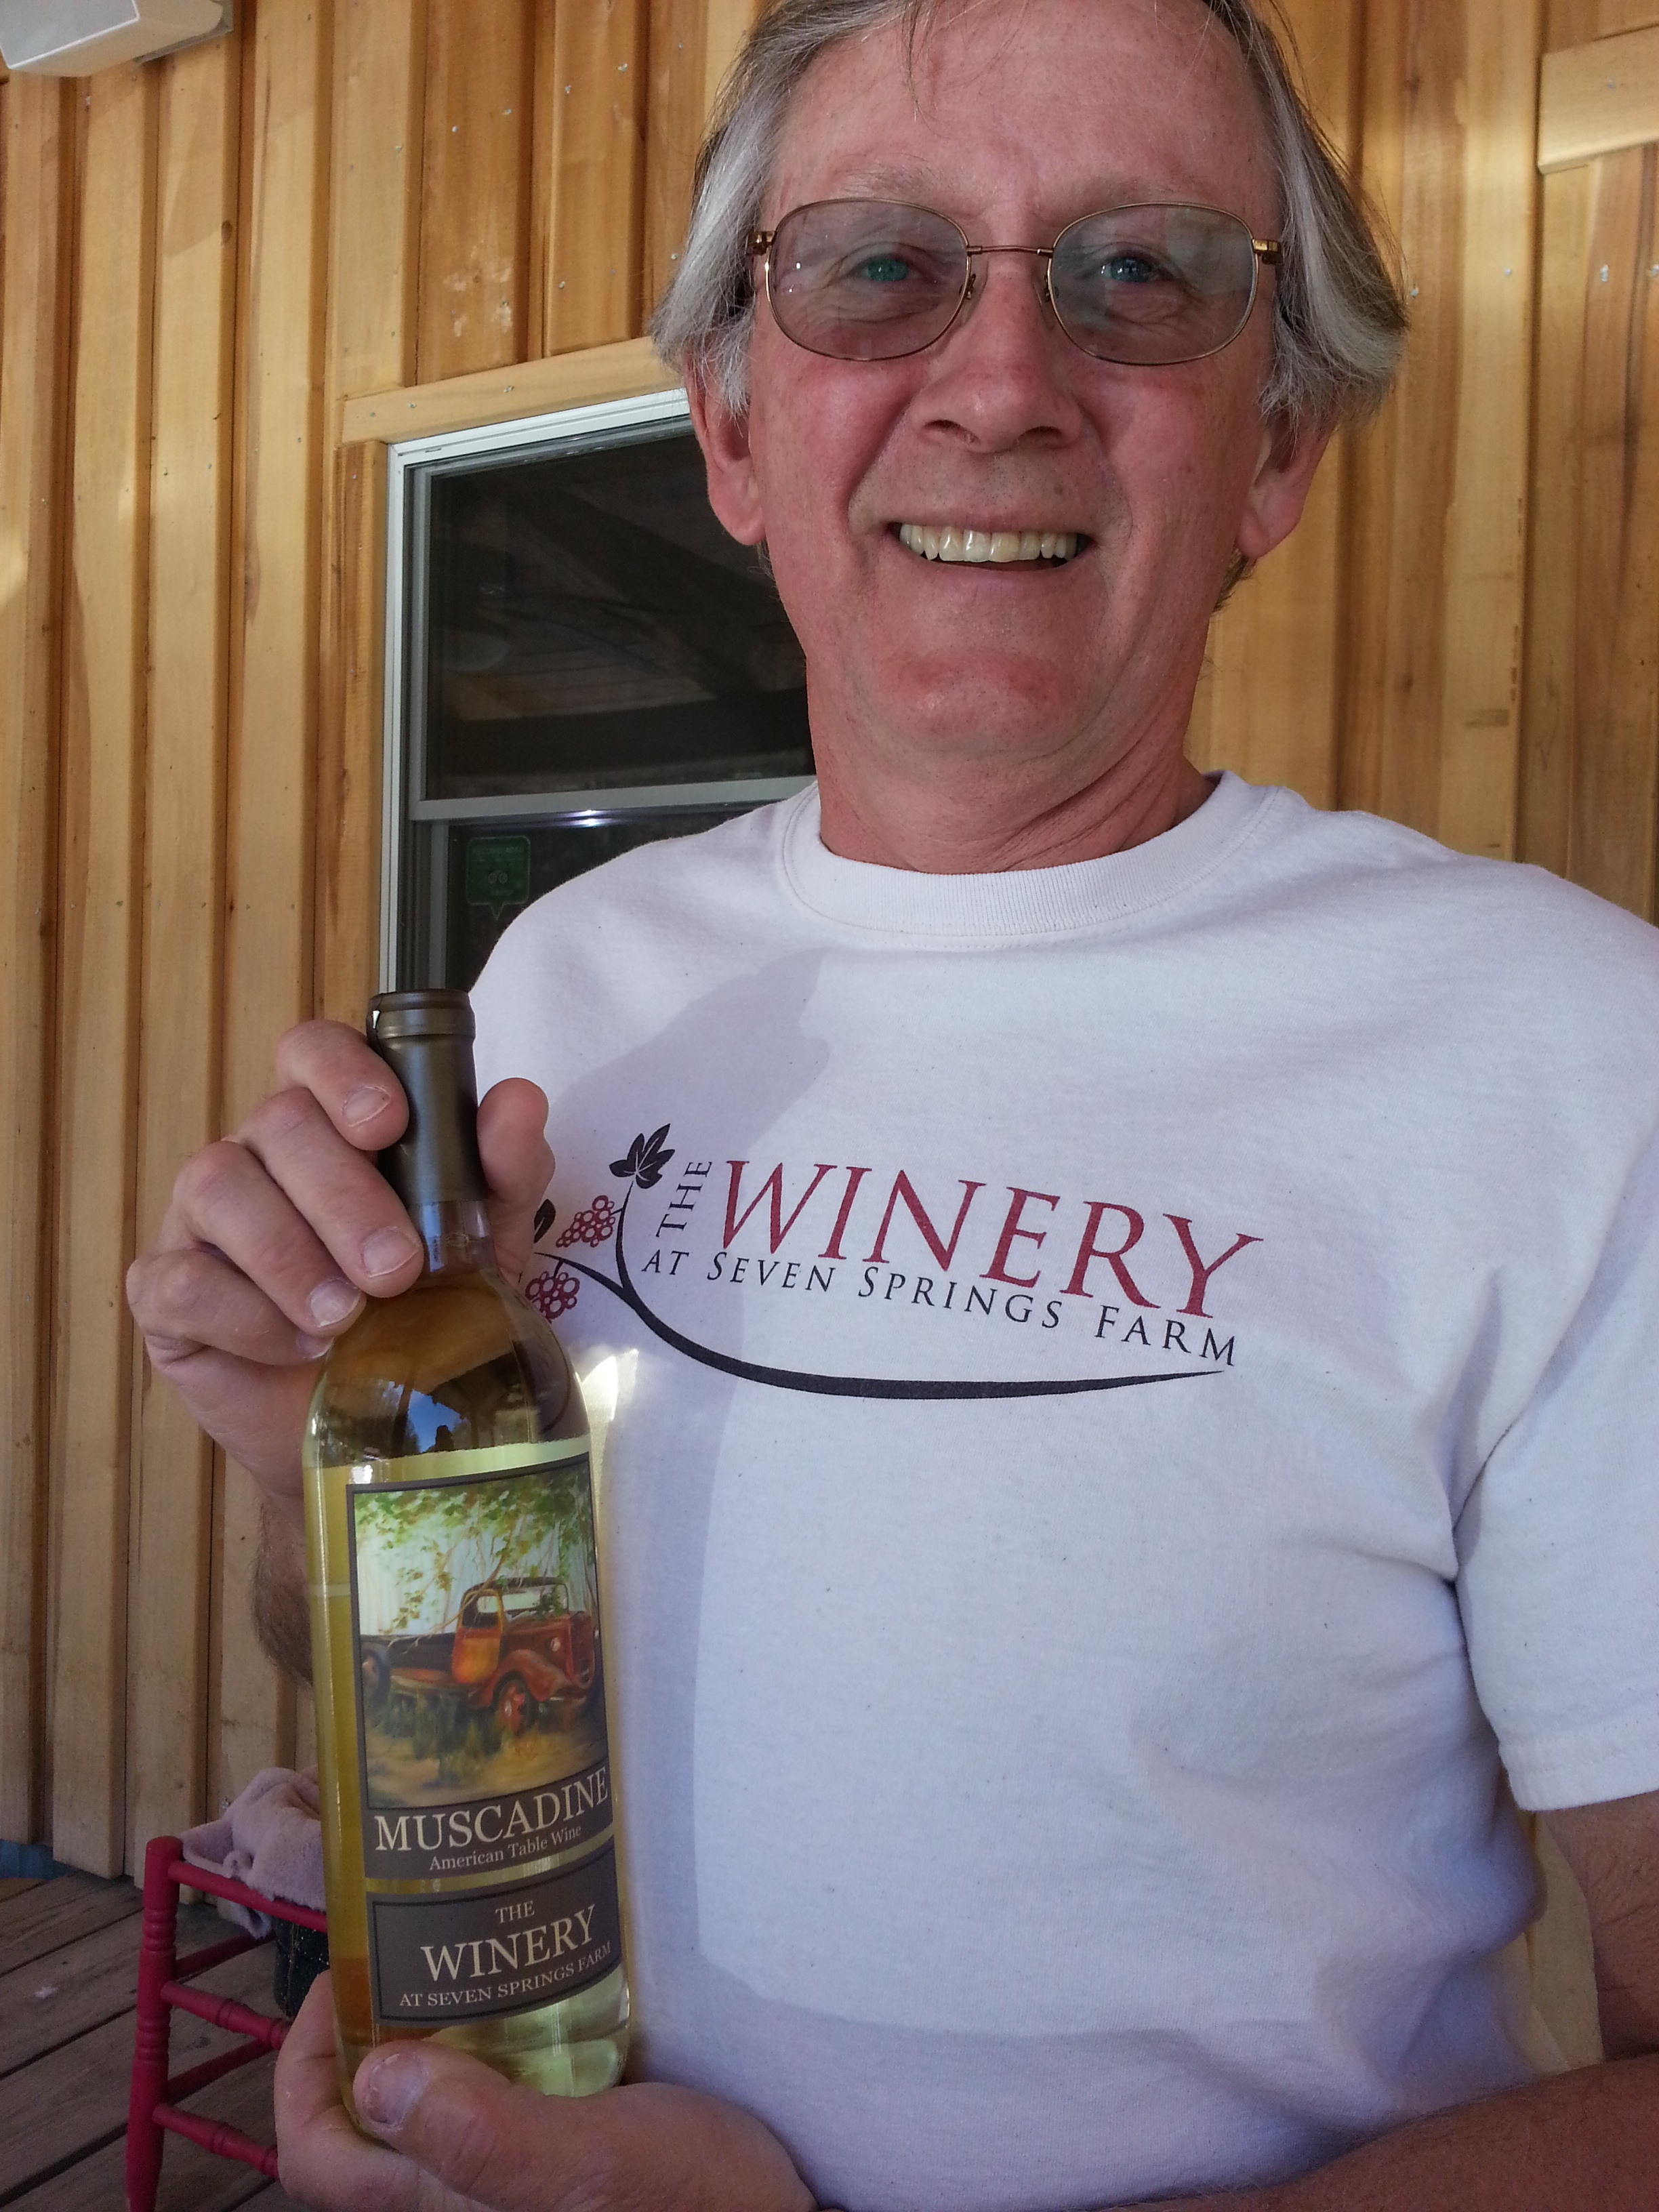 Rick Riddle holding a bottle of the award winning Muscadine wine from The Winery at Seven Springs Farm, Maynardville, TN.   https://www.facebook.com/theWineryatsevenspringsfarm/